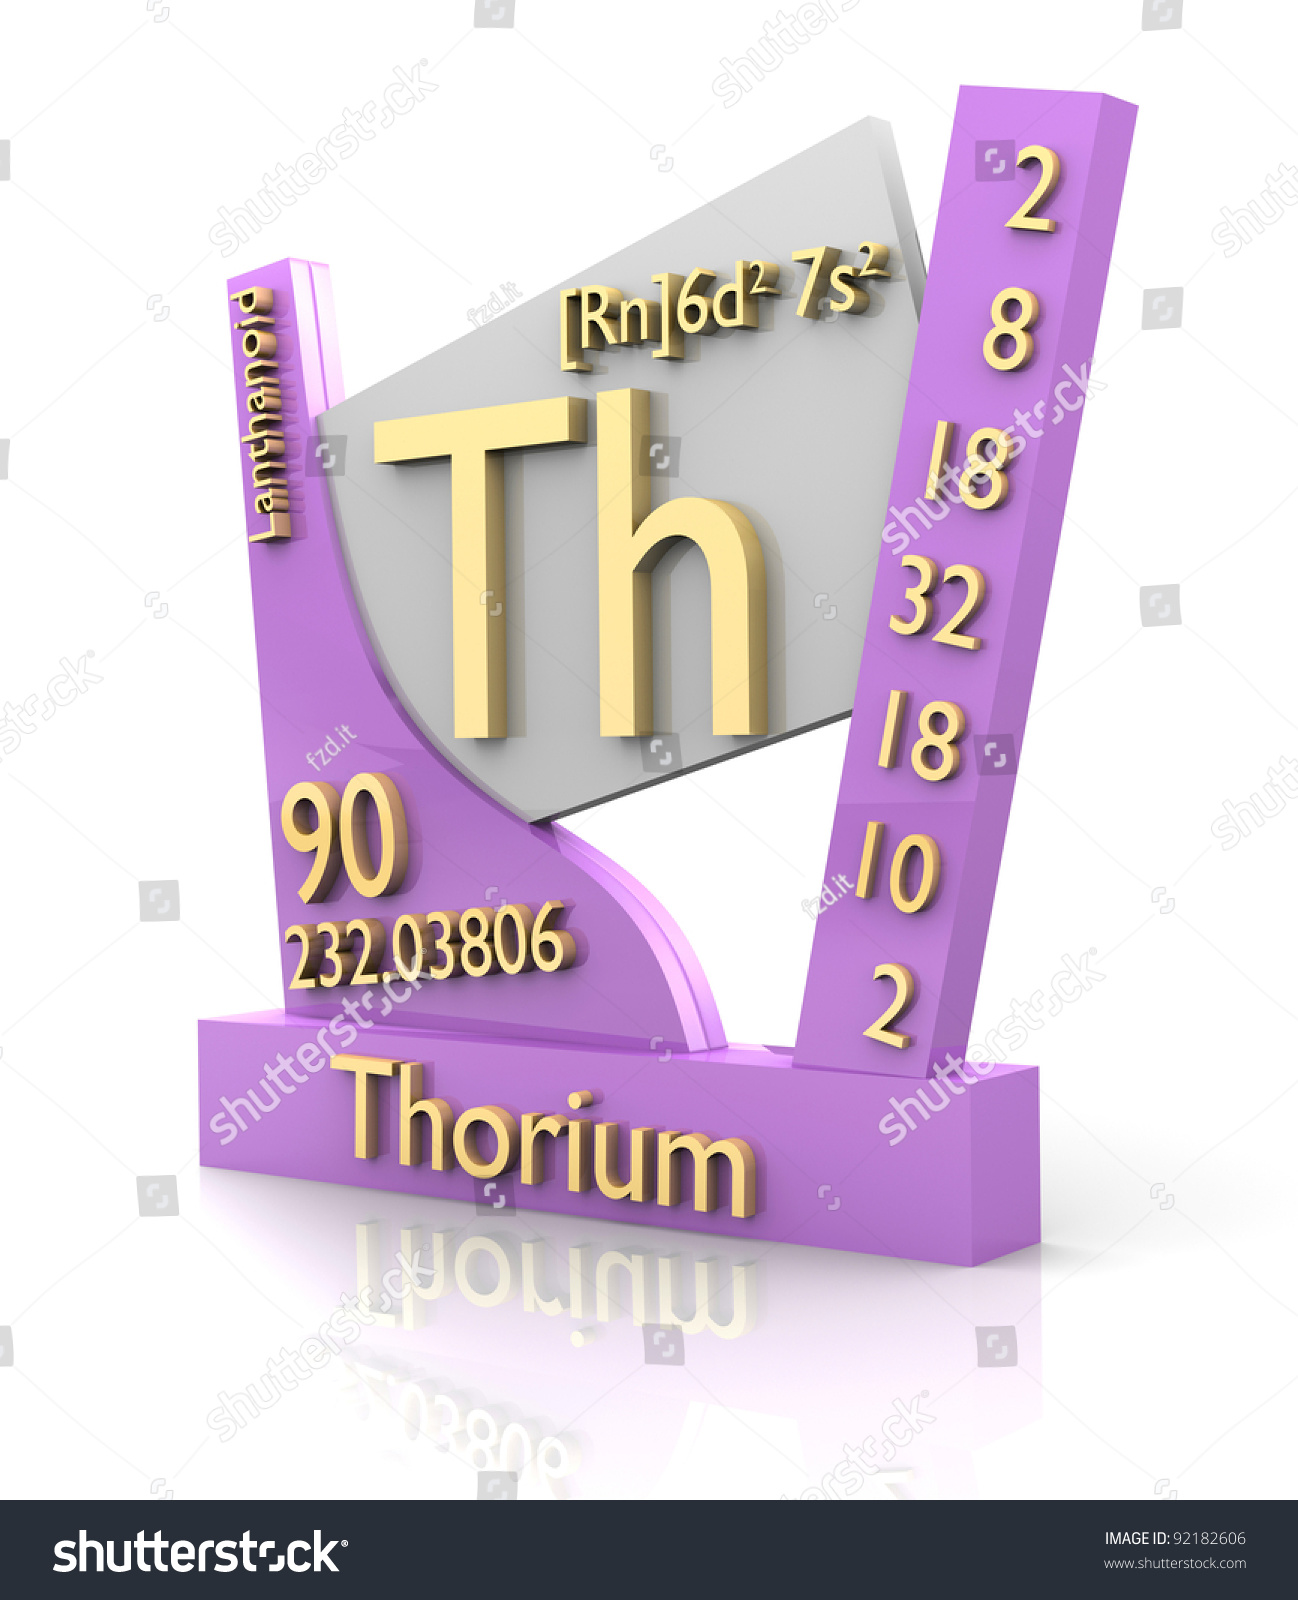 Periodic table element d image collections periodic table images thorium on periodic table gallery periodic table images thorium form periodic table elements 3d stock illustration gamestrikefo Images